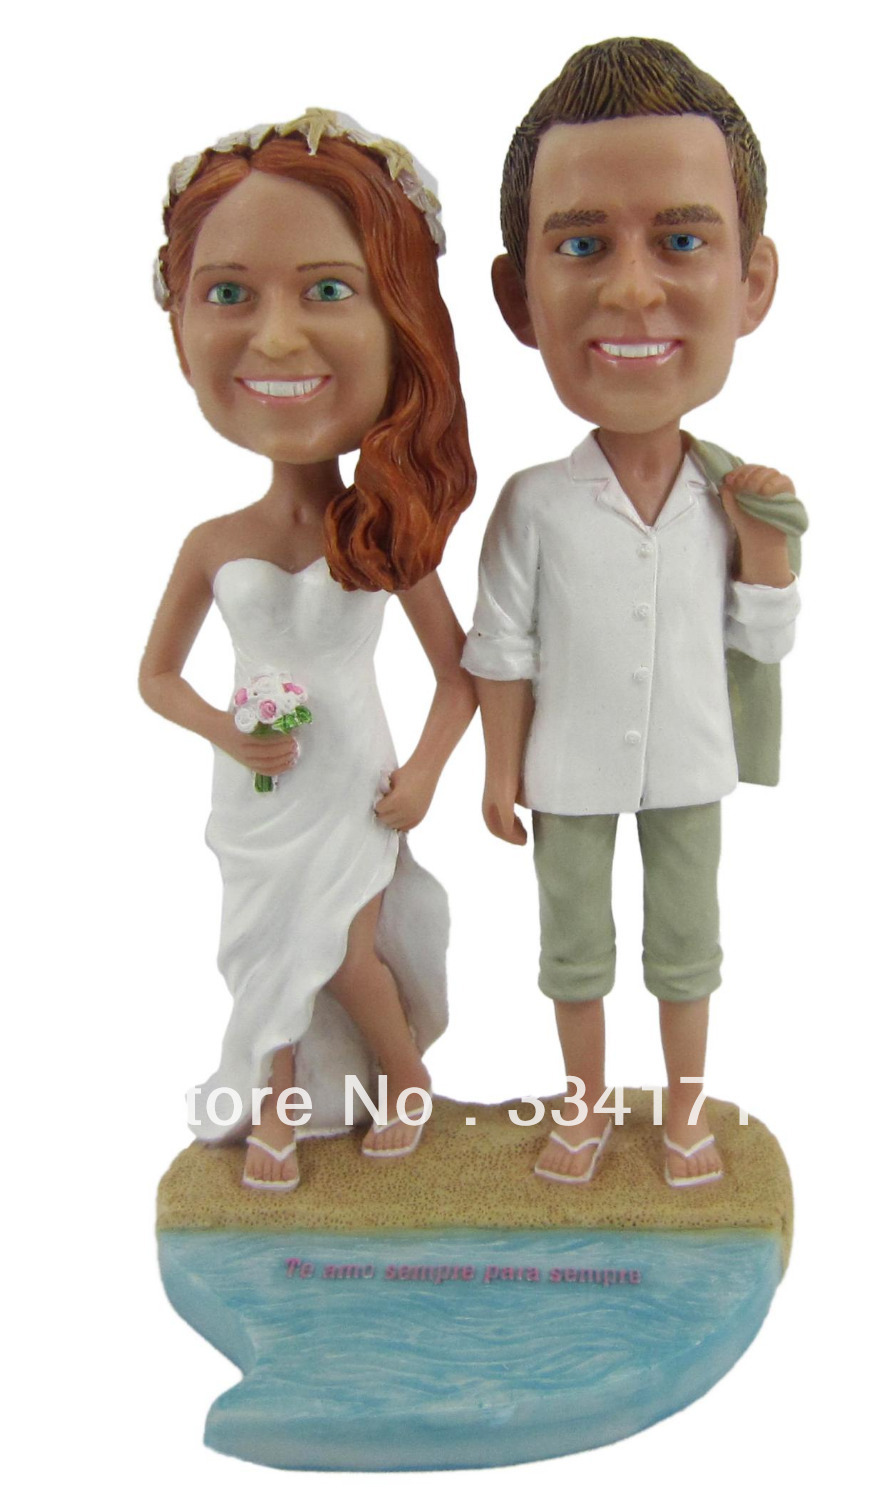 Personalized bobblehead doll beach wedding gift wedding decoration fixed polyresin body + polyresin head Custom doll(China (Mainland))